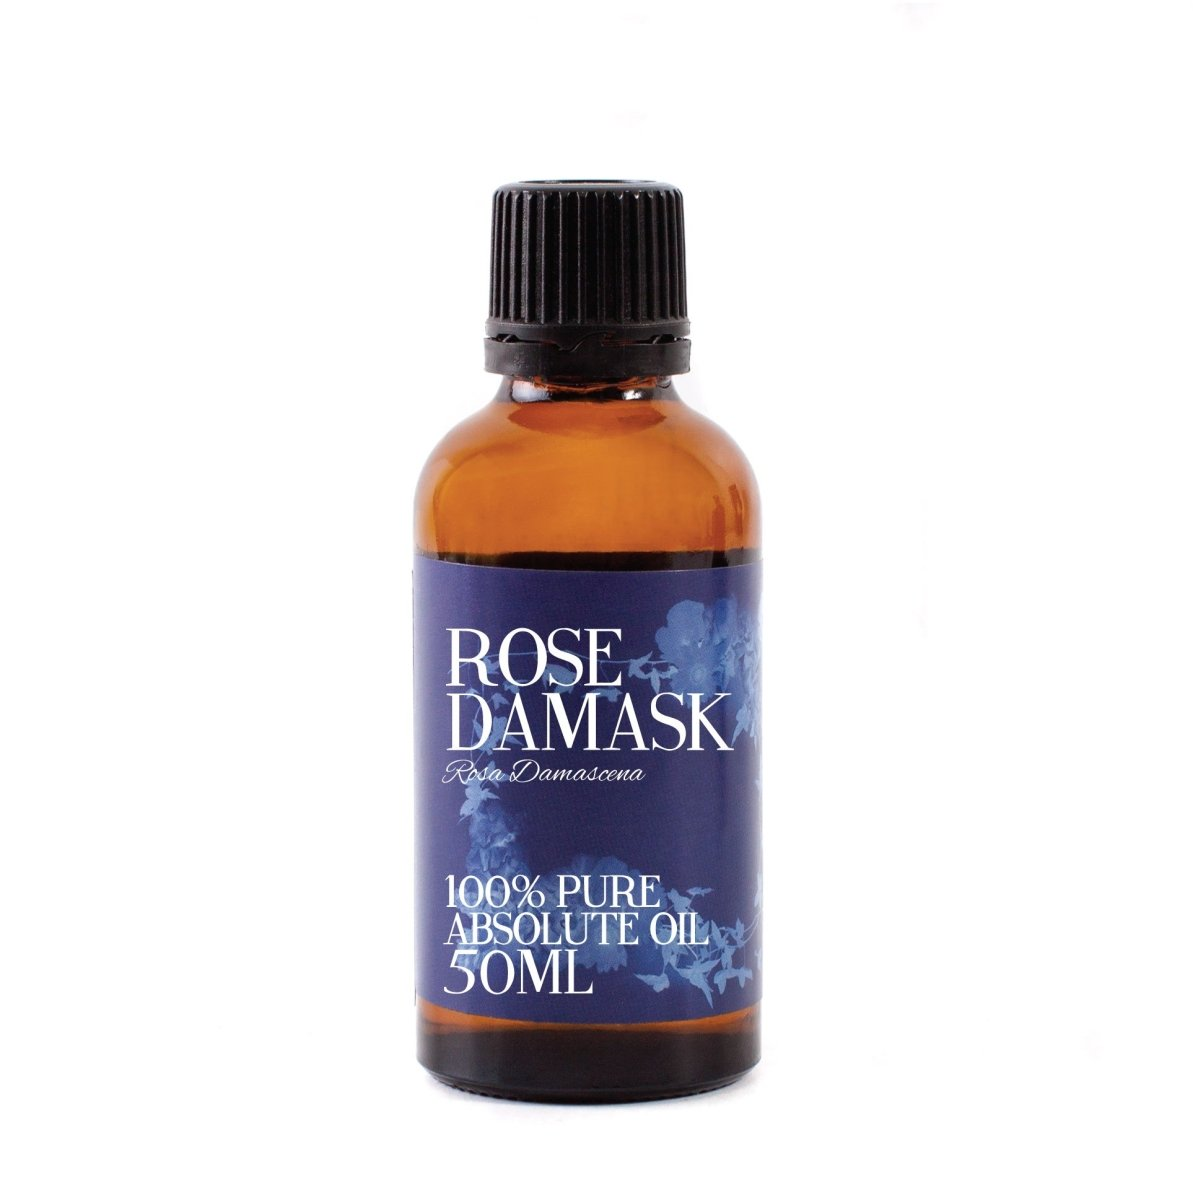 Rose Damask - Absolute Oil - Mystic Moments UK